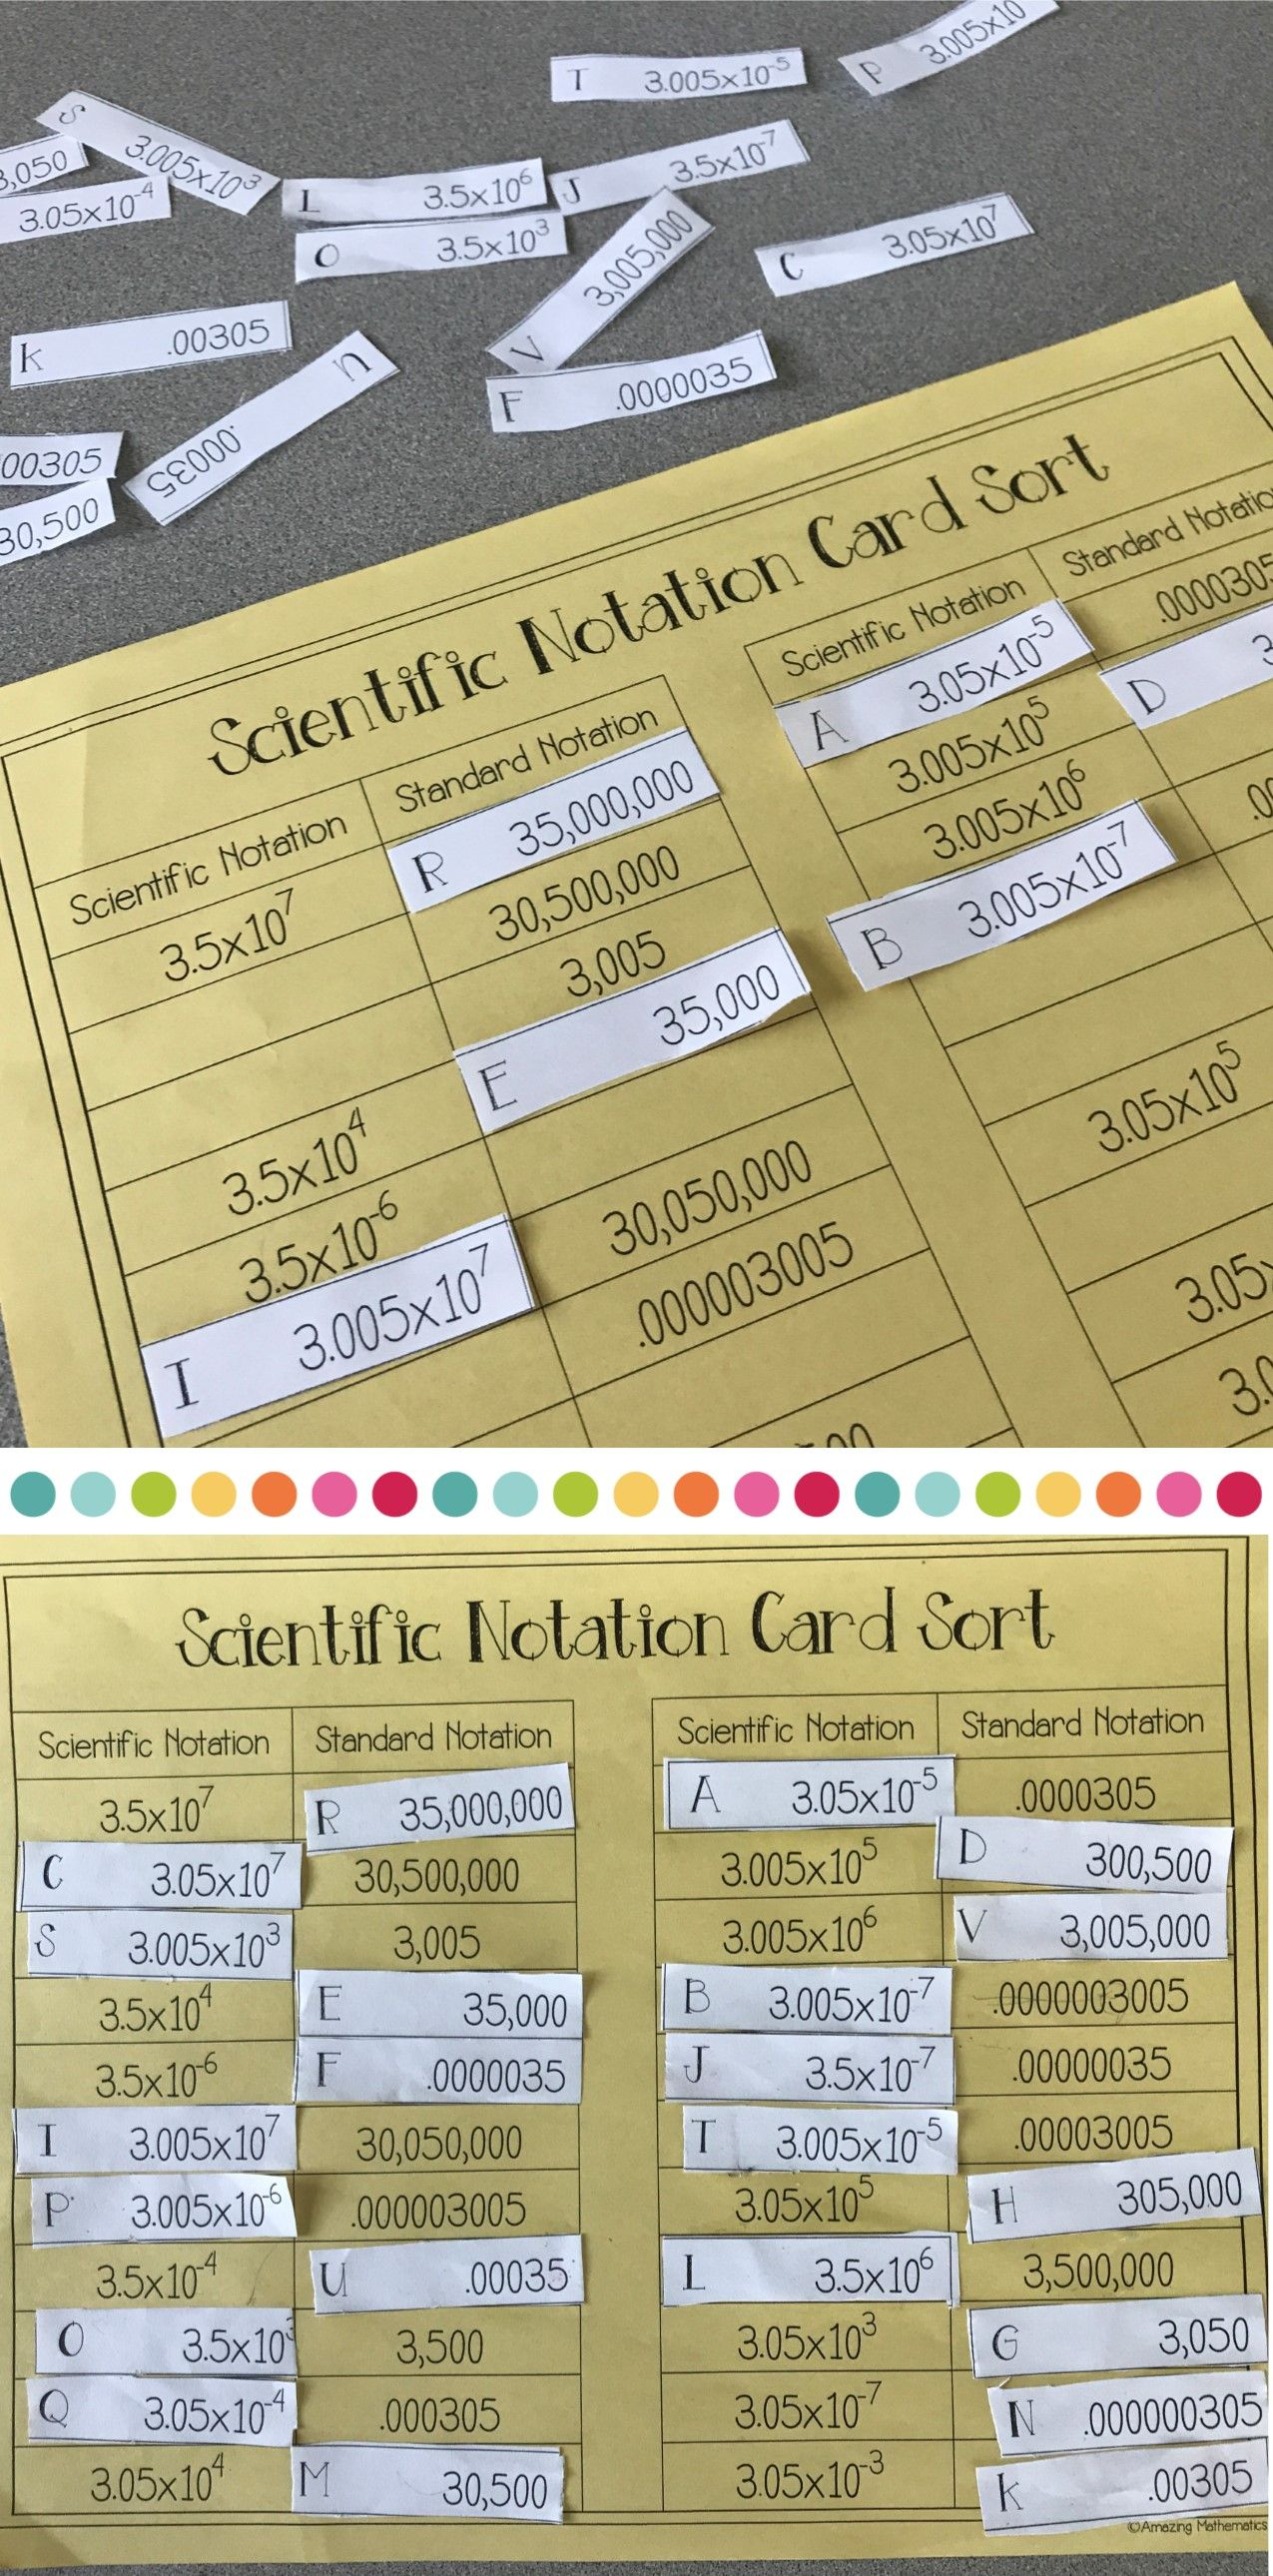 Scientific Notation Card Sort Activity